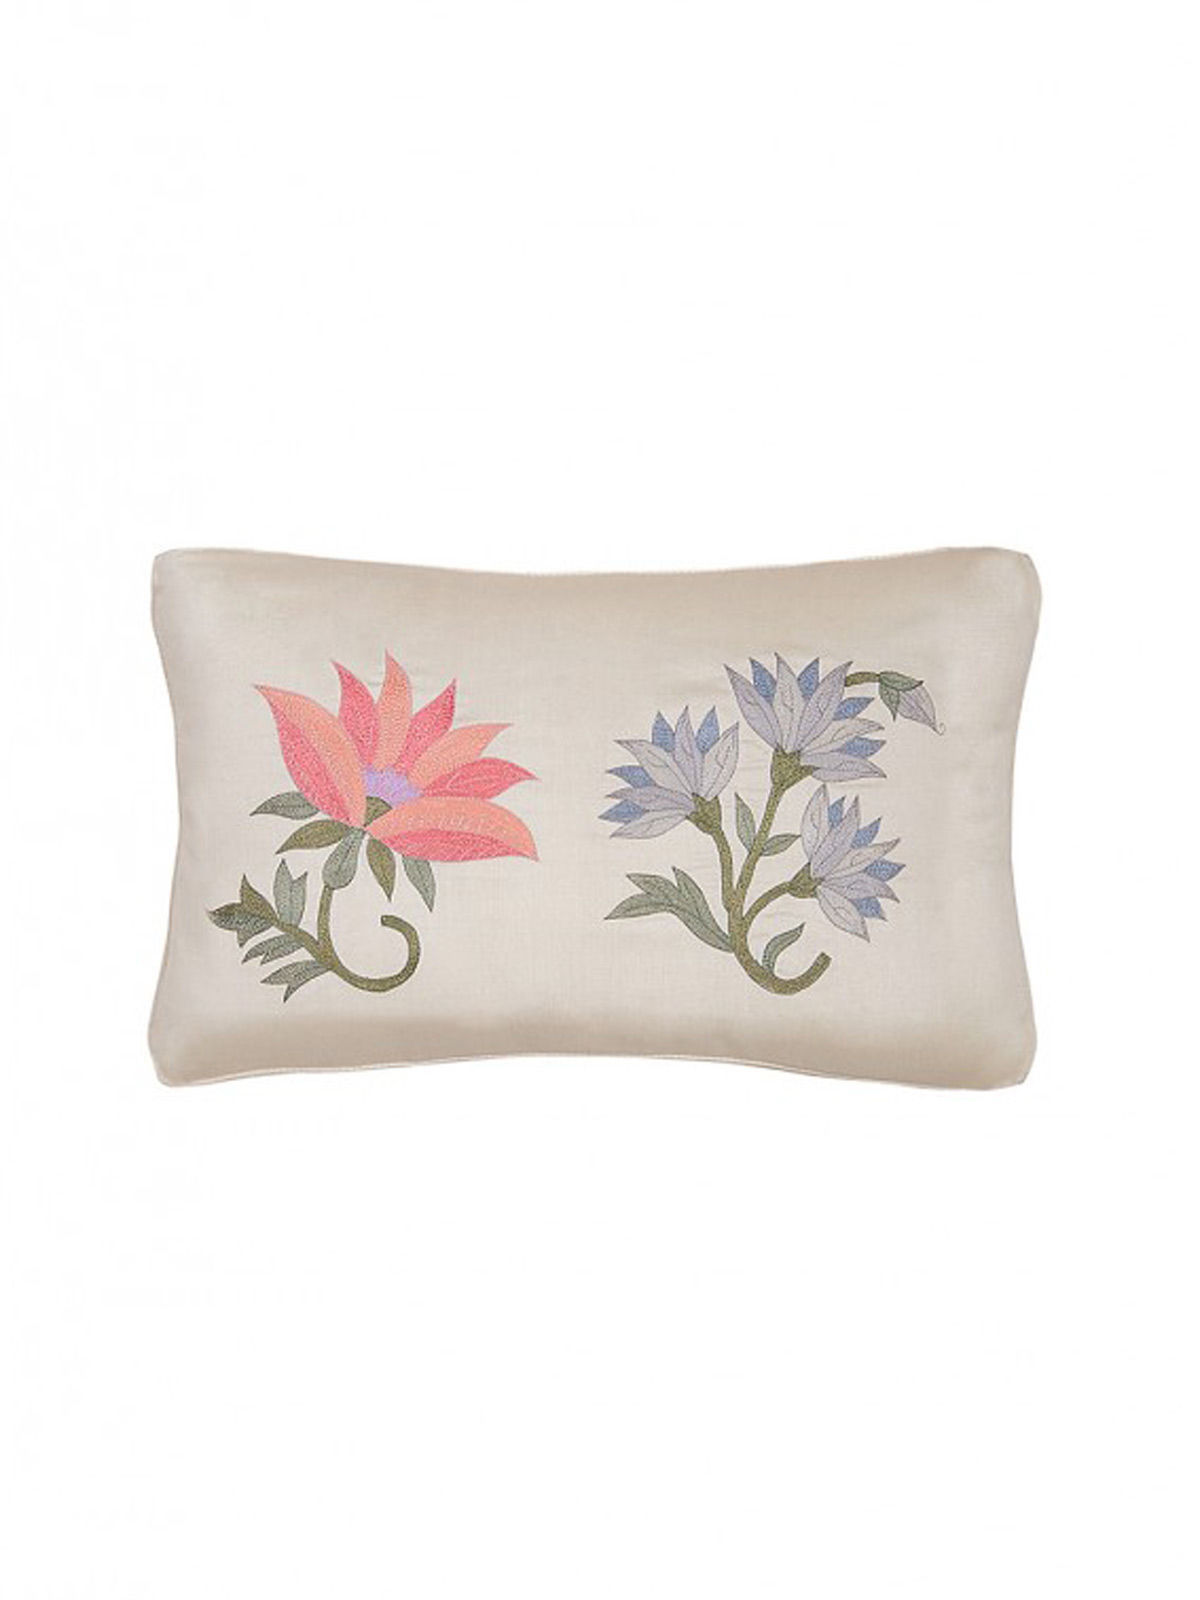 White-Multicolored Embroidered Silk Cushion Cover with Floral Motif